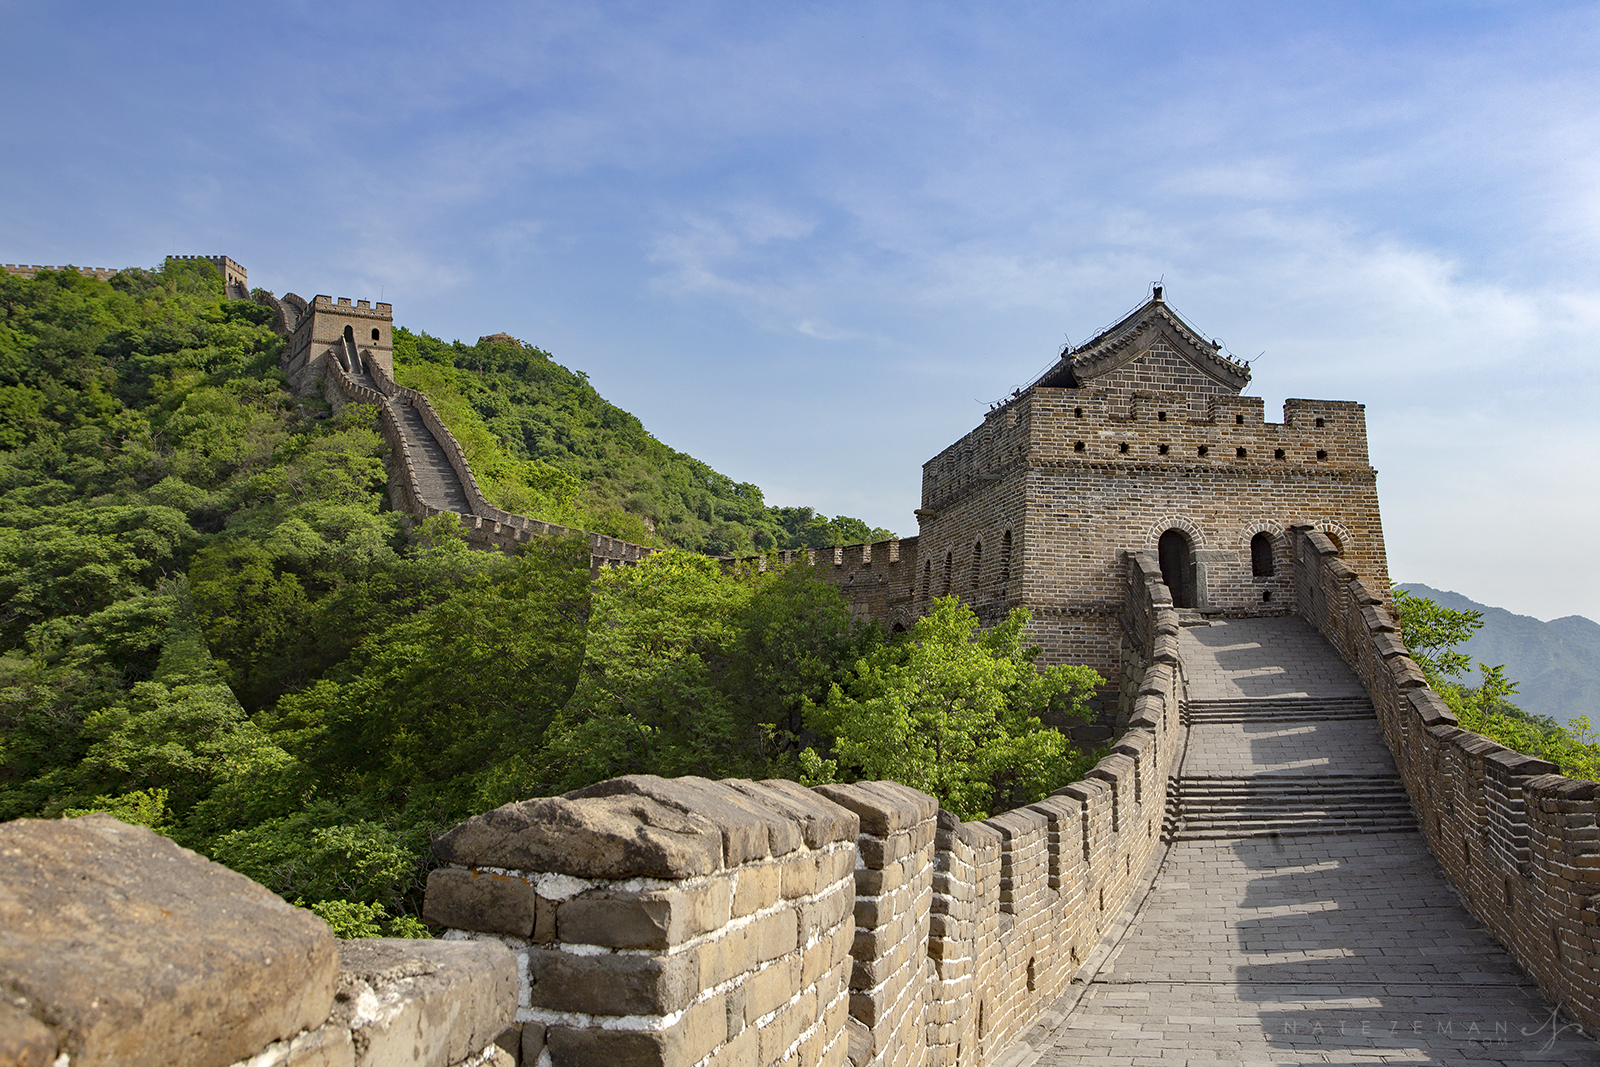 The Mutianyu Great Wall was originally built by the Northern Qi Dynasty in (550–577) over 1,400 years ago. It was rebuilt and...